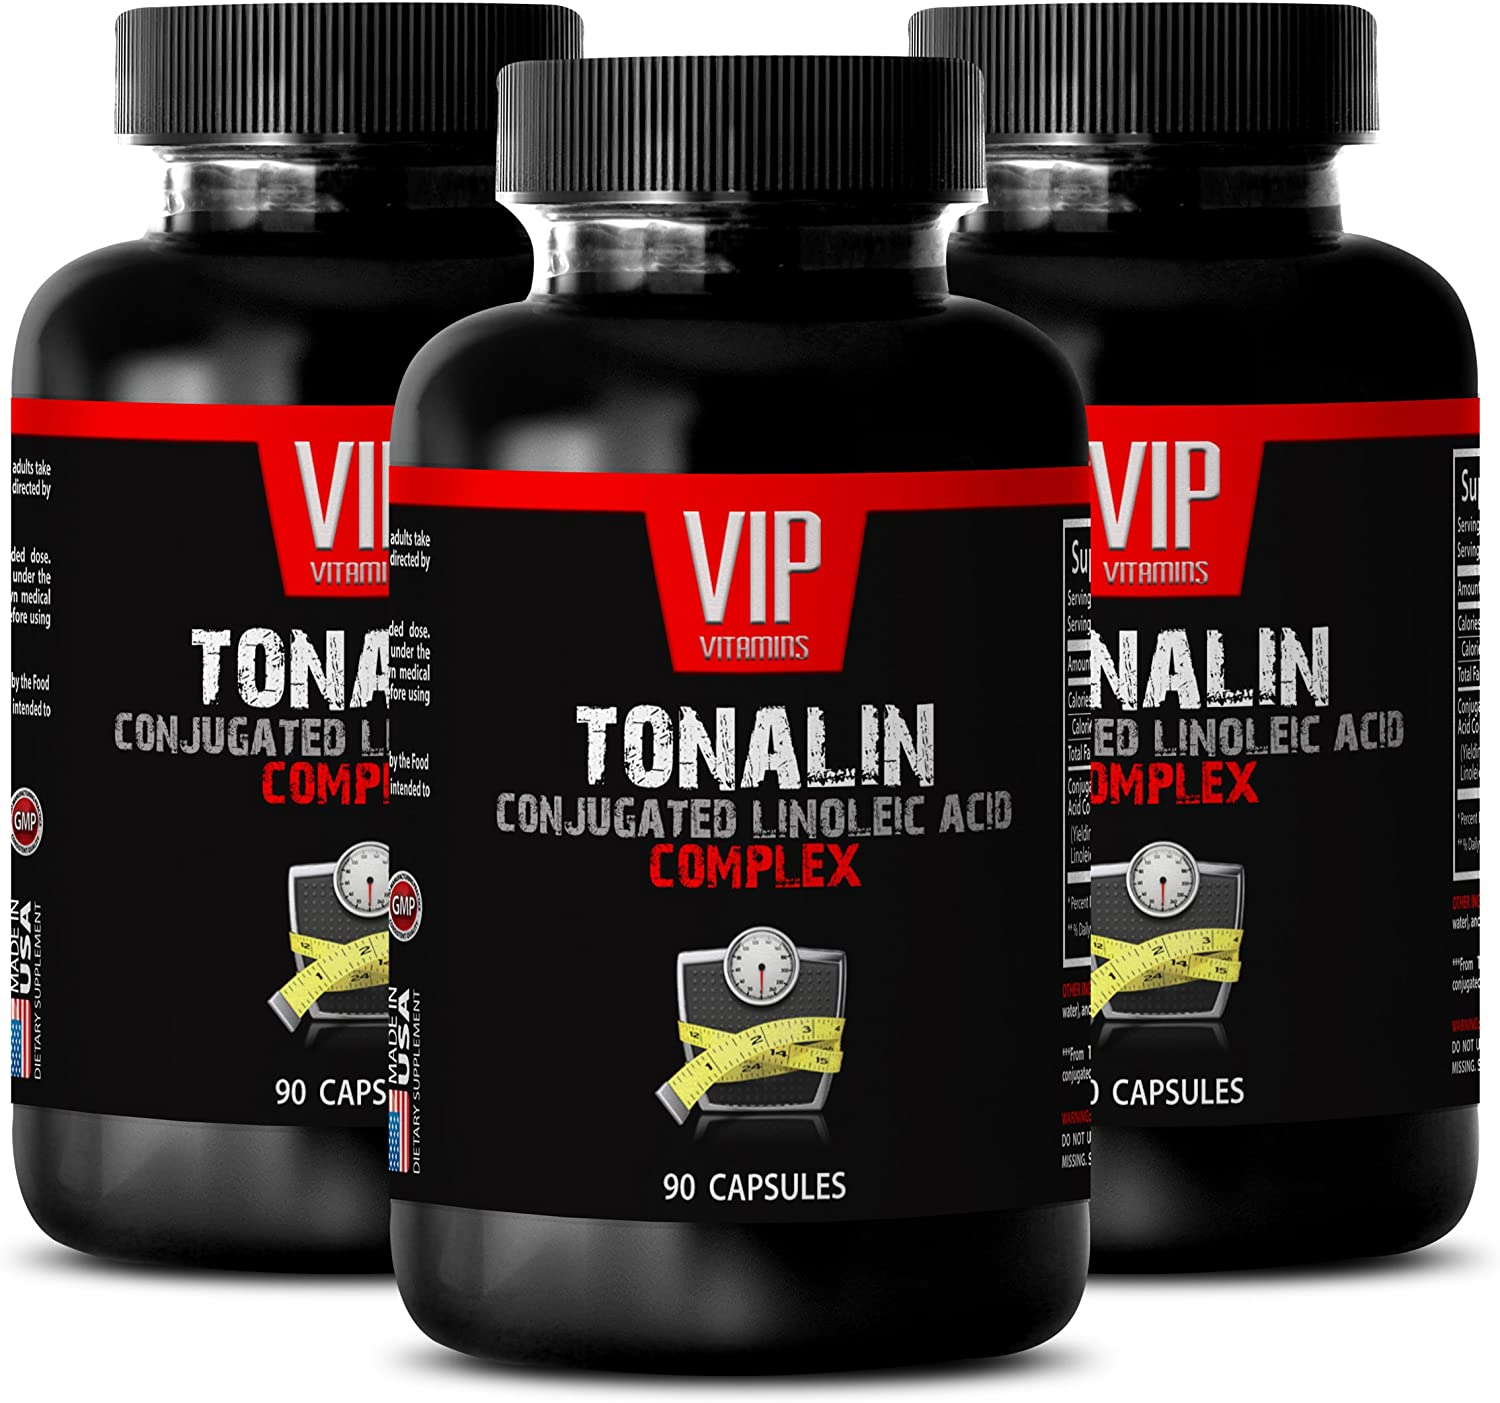 Natural Workout Supplements - TONALIN 2021 autumn and winter new C Linoleic Conjugated Acid Outstanding